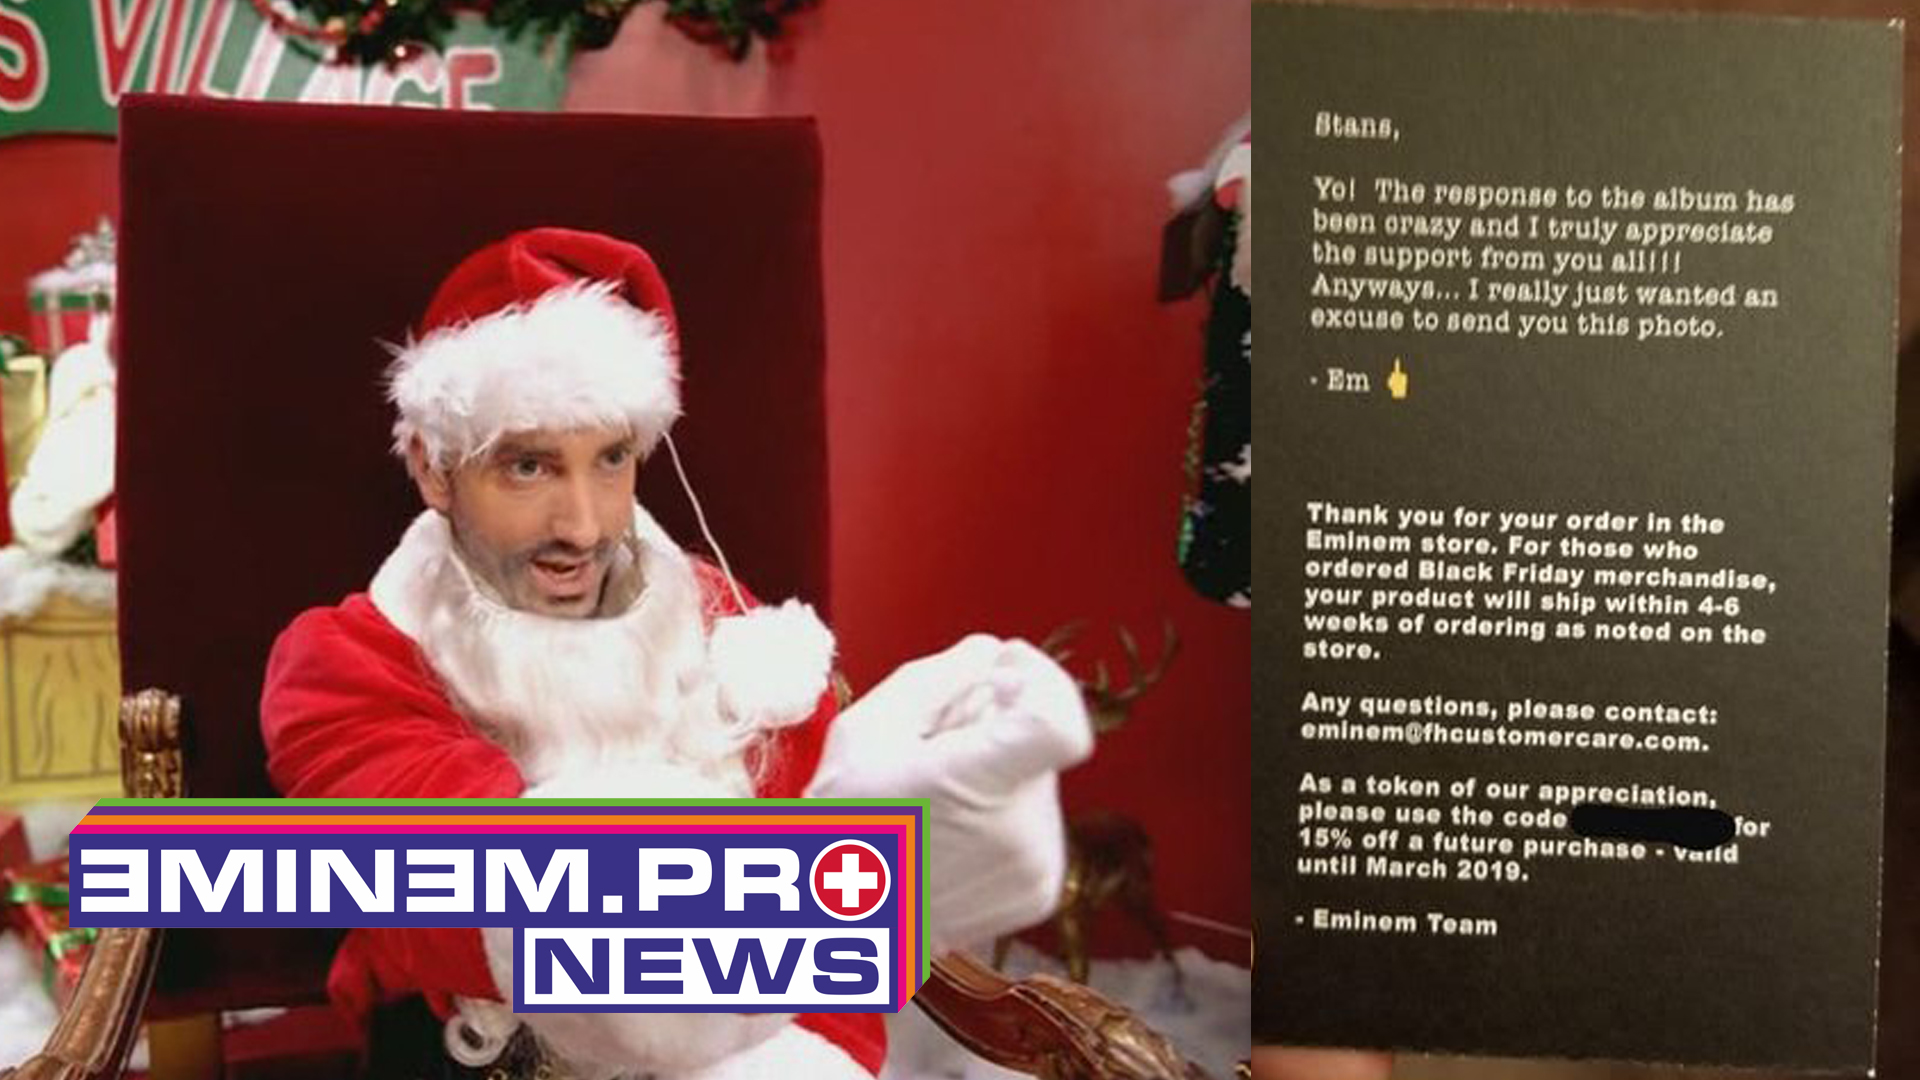 Eminem is sending Christmas cards to fans